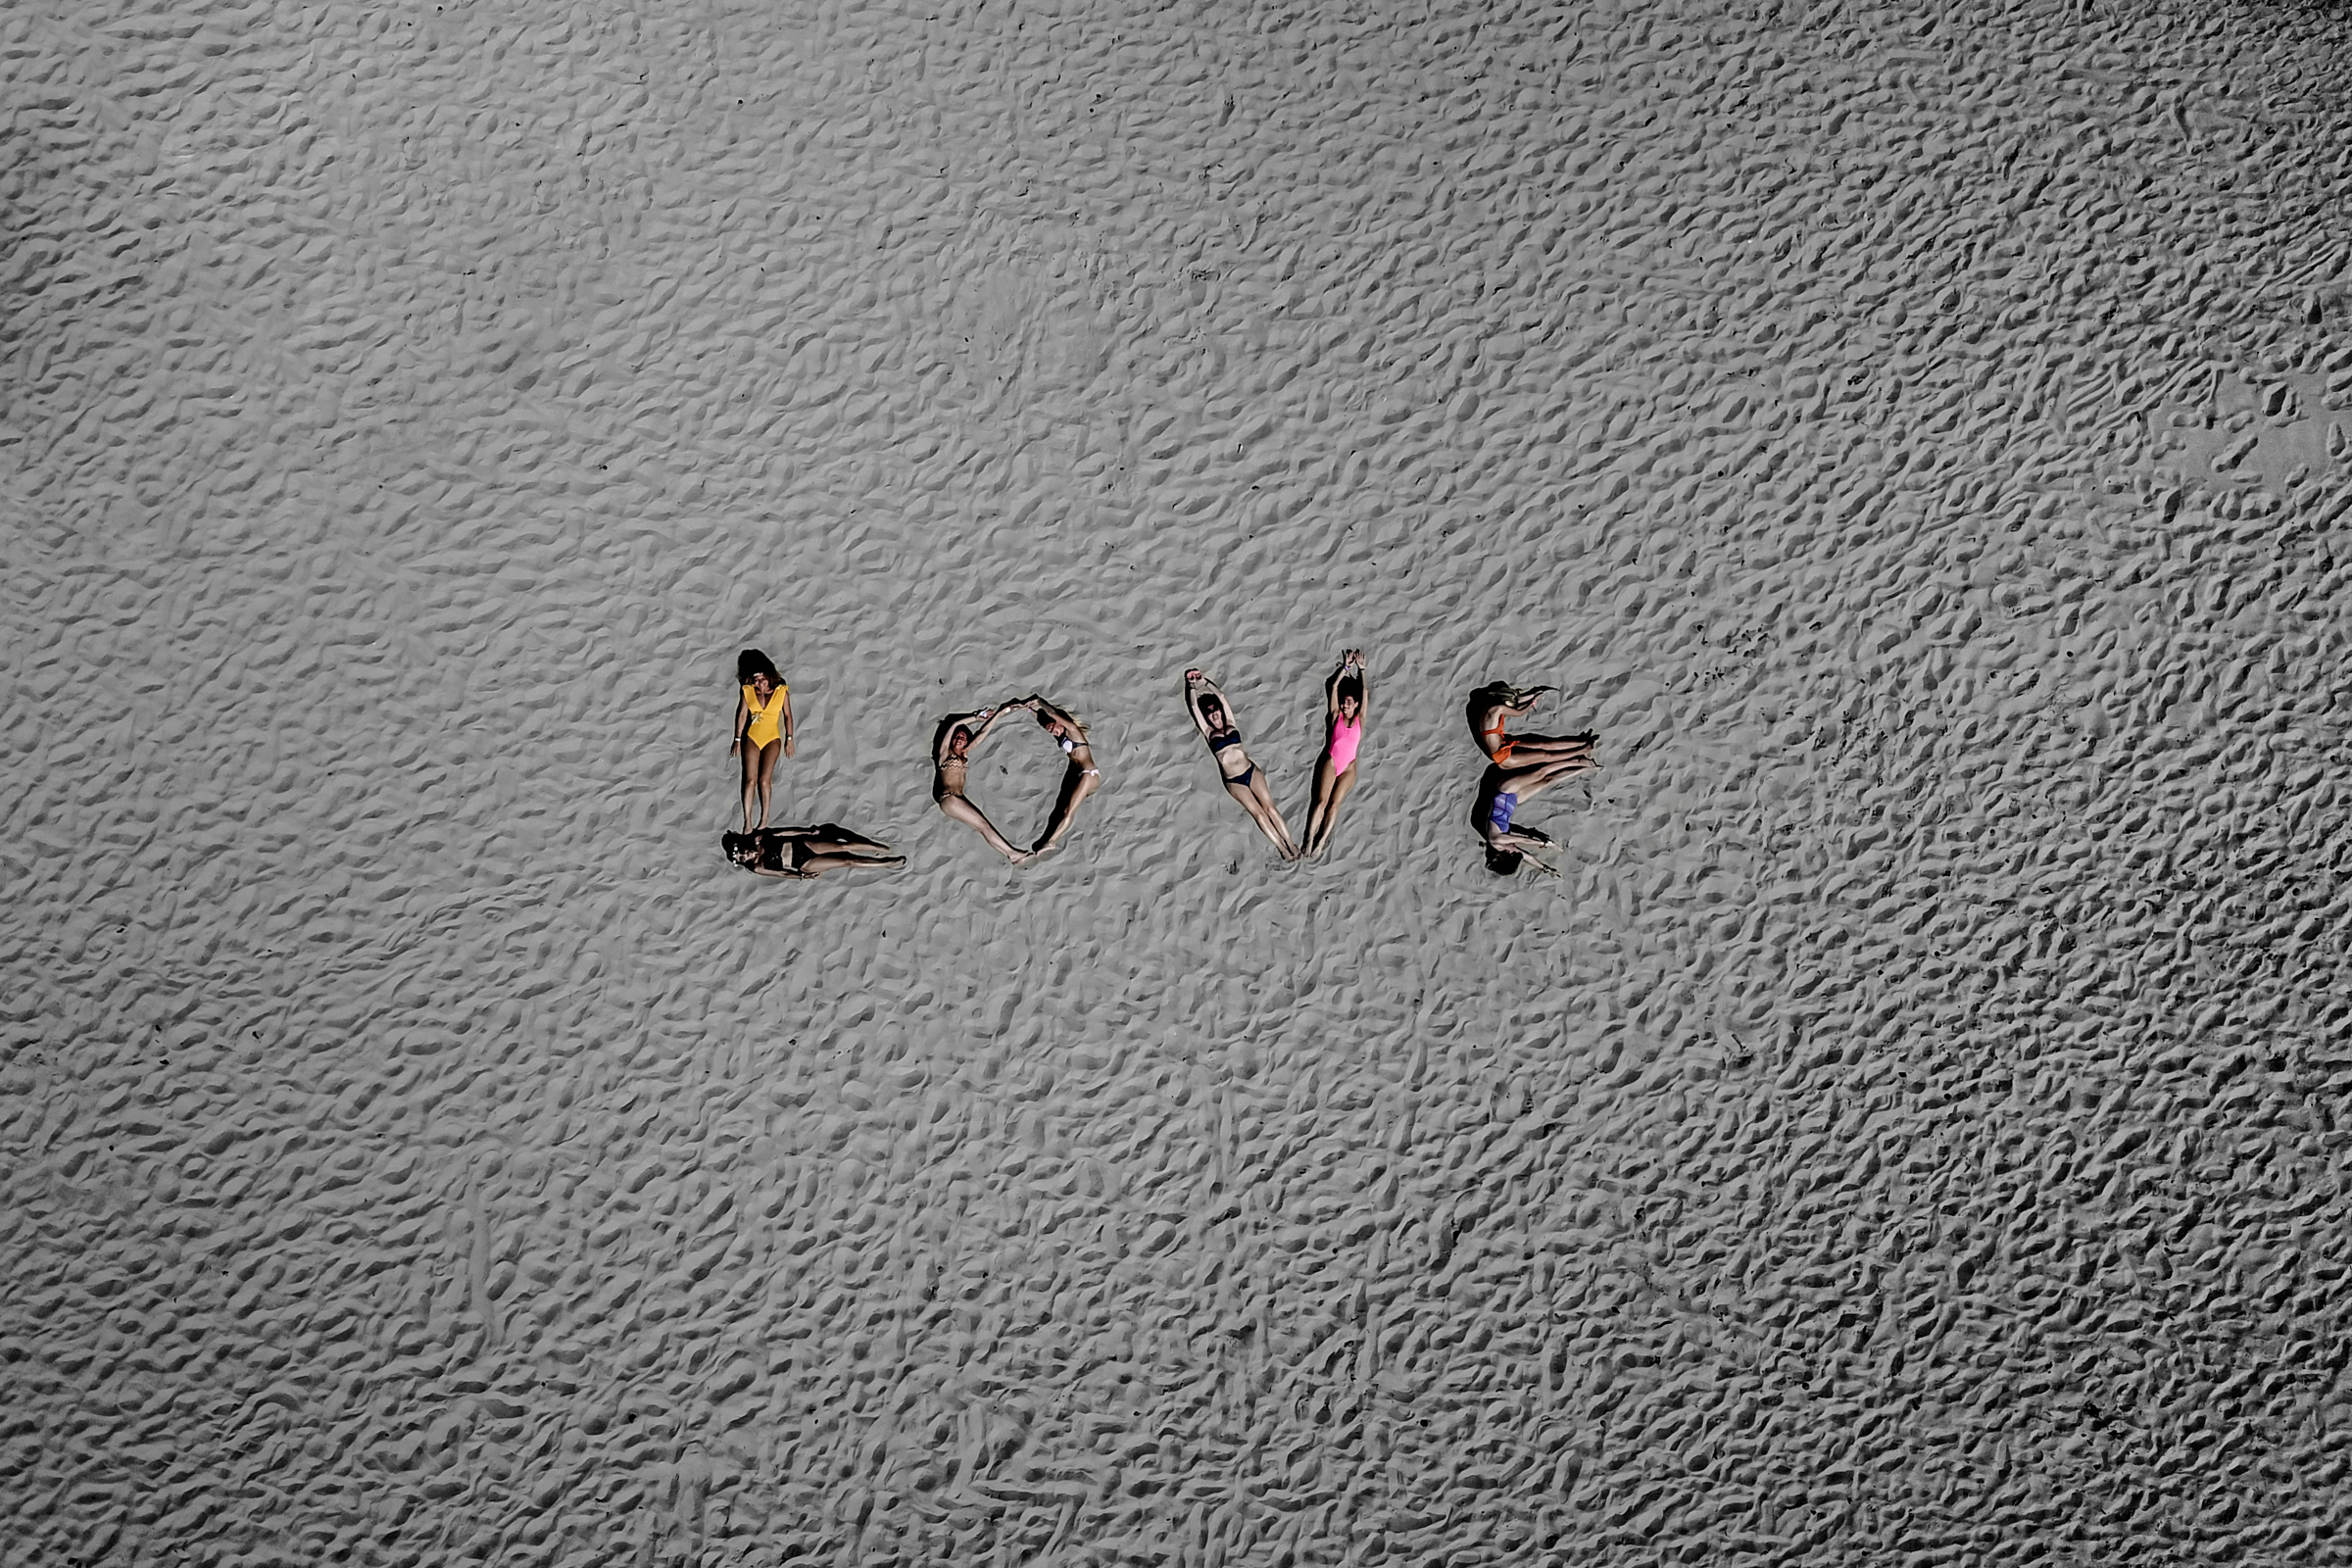 guests-write-love-in-the-sand-julien-laurent-georges